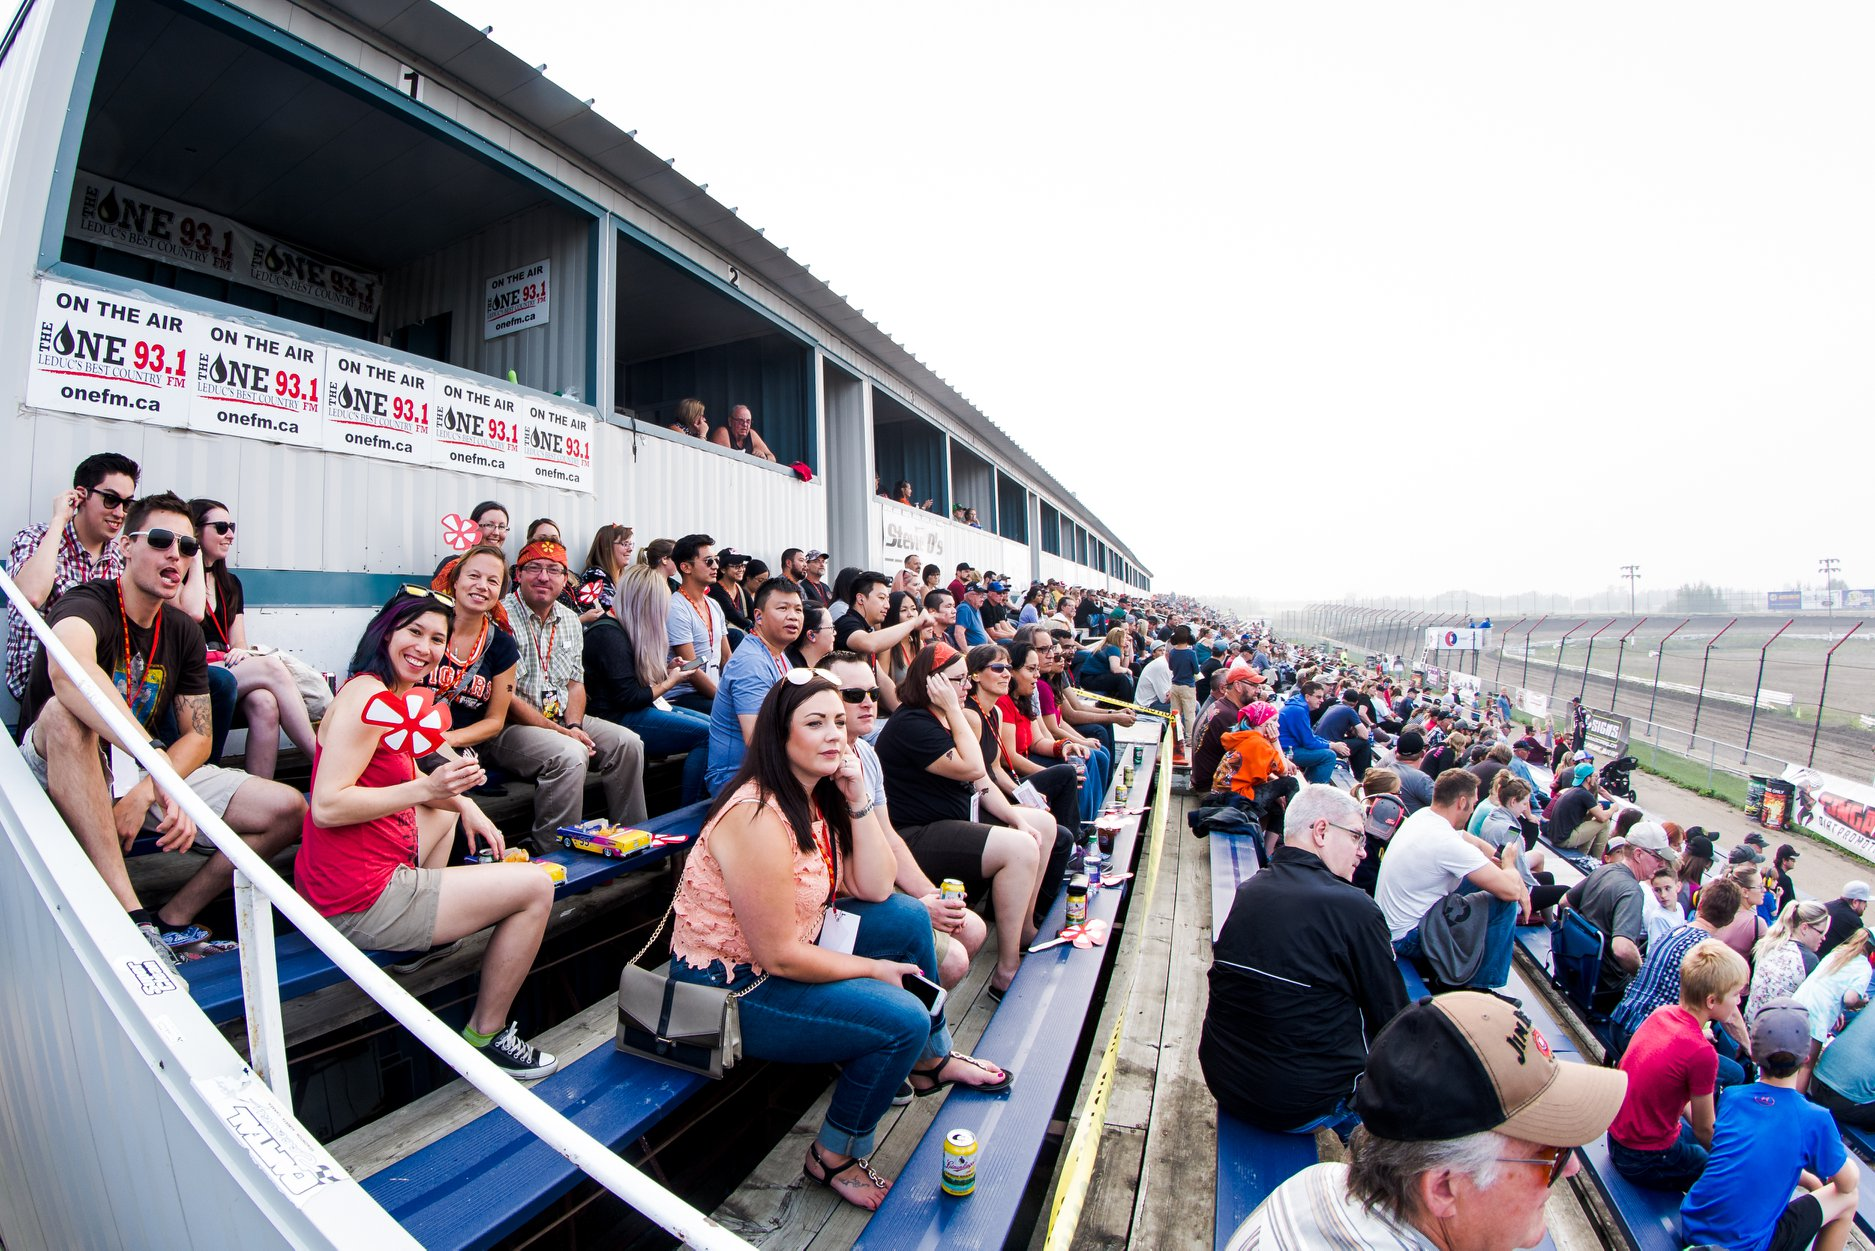 Saturday Nite Thunder - Adult $ 20.00Youth $ 10.00(Adult: 13 years old & up. Youth: 6-12 years old)Tickets are available ONLY at the spectator gate.Gate opens at 3:45 PM. Racing starts at 7:00 PM.